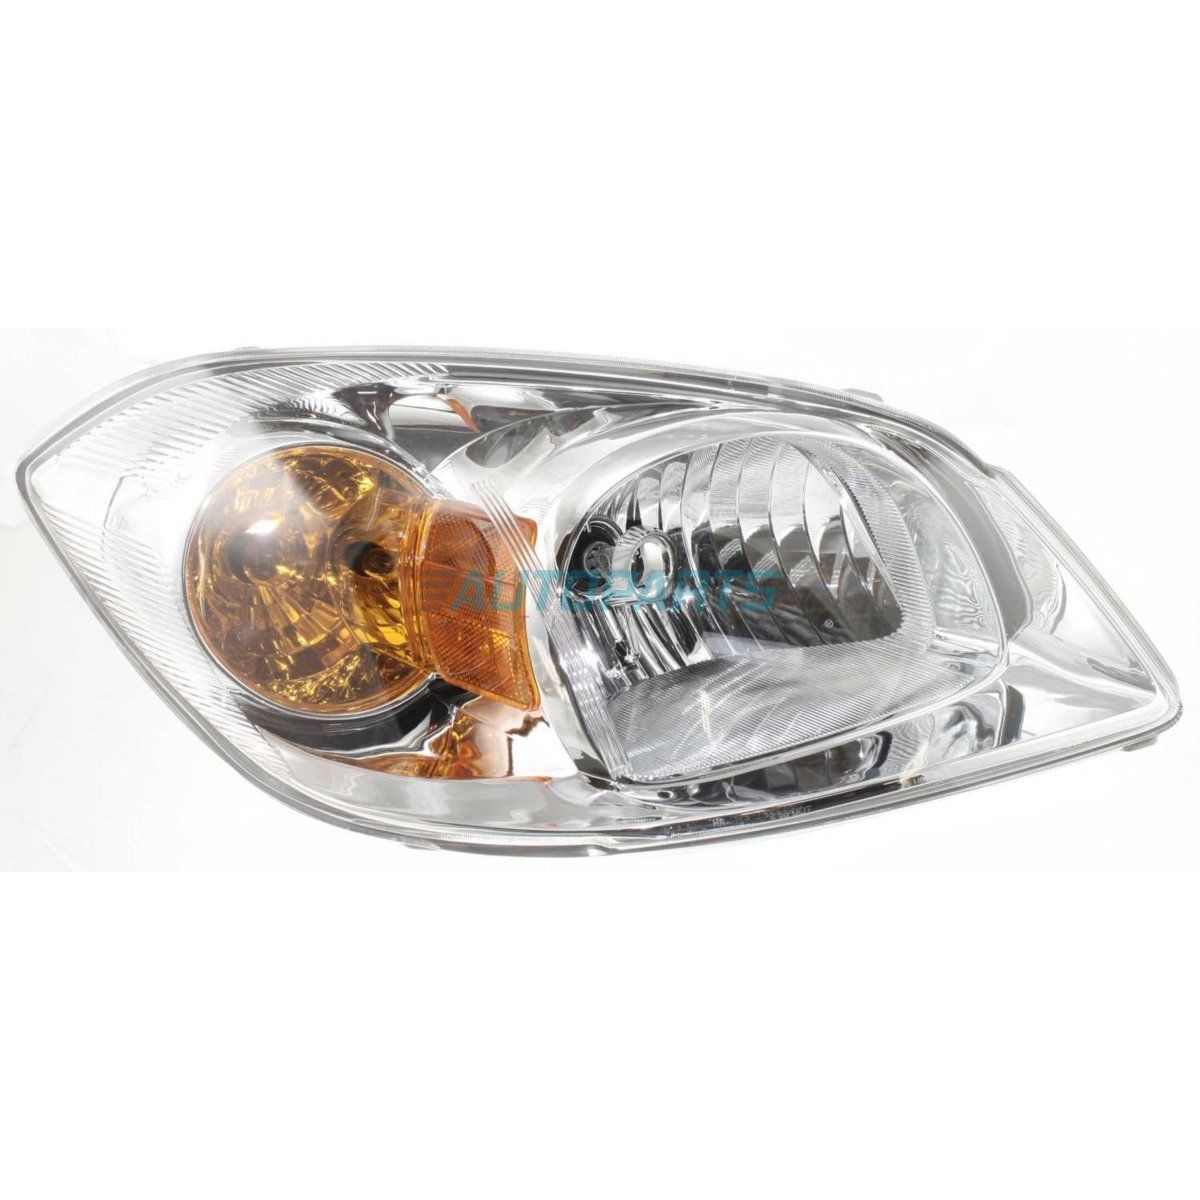 2005 chevy cobalt headlight bulb small air grinder